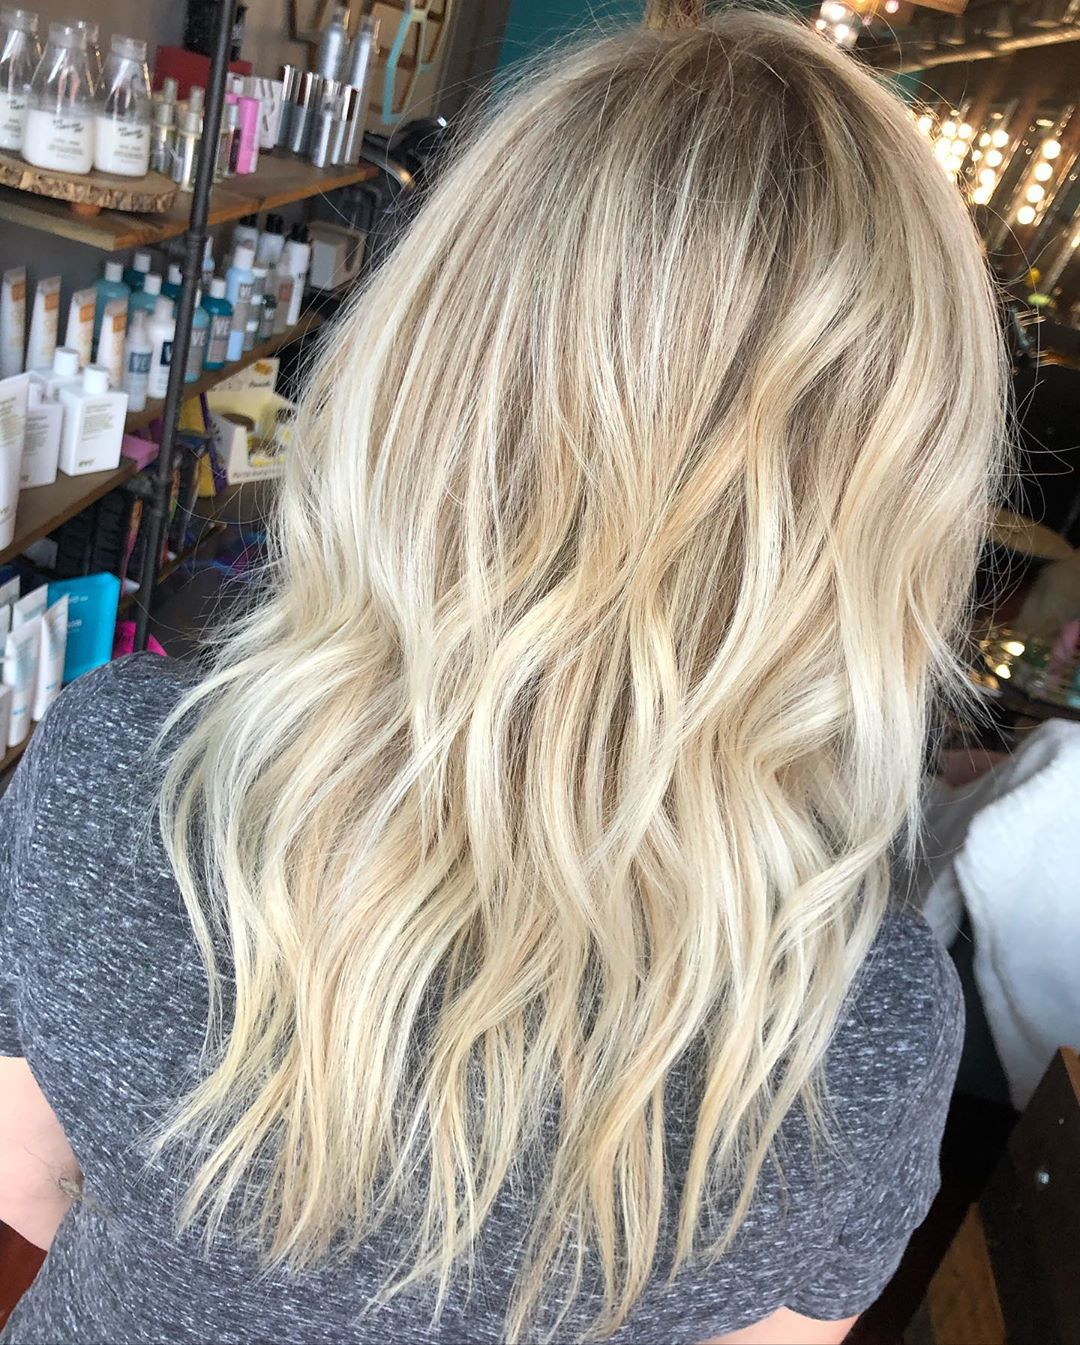 balayage ombre hairstyles 8 9 New Blonde Balayage Hairstyles You'll Love!